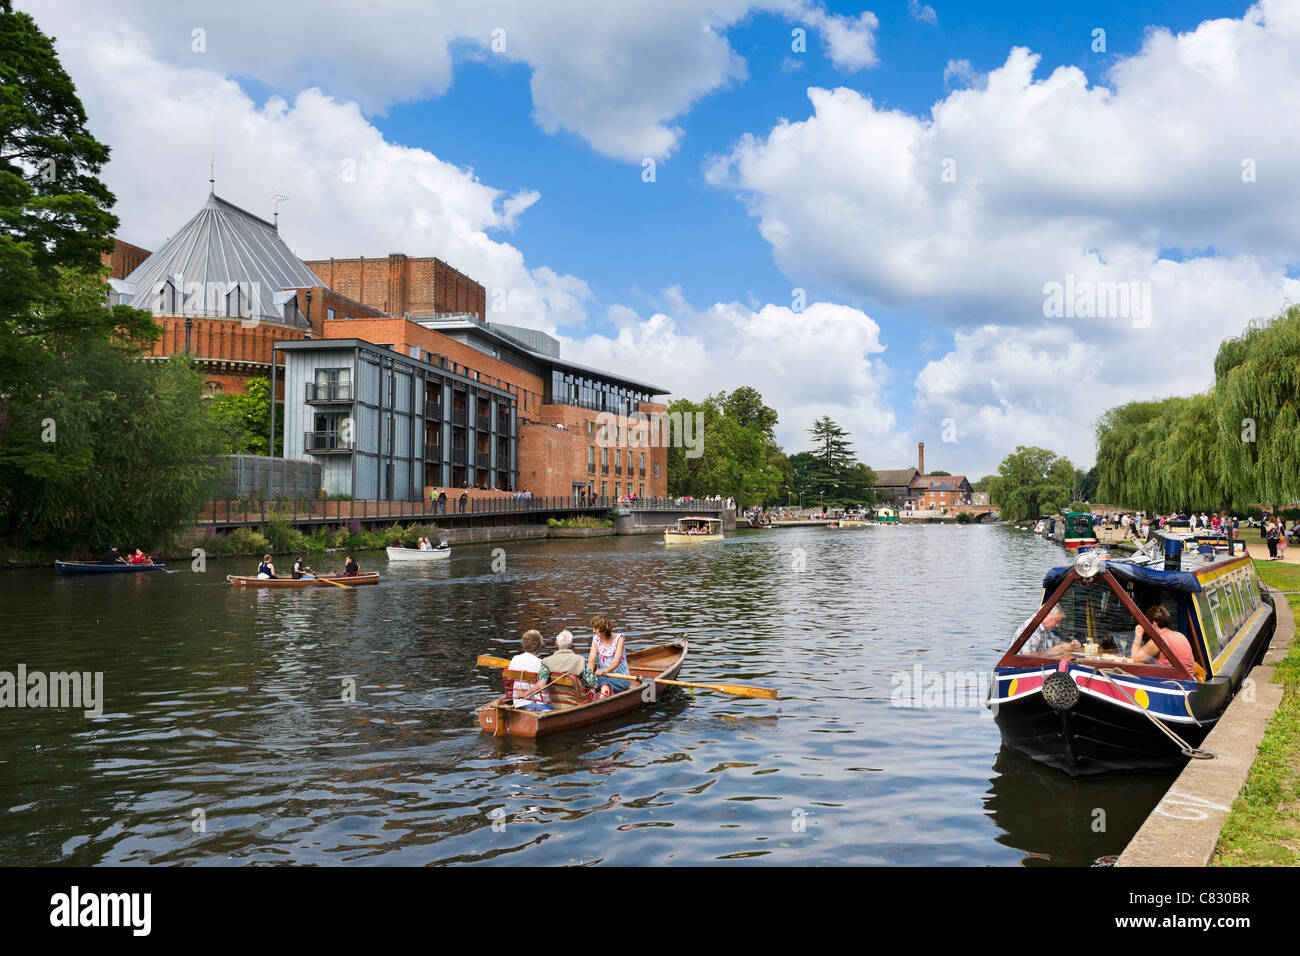 Rowing boat on the River Avon in front of The Royal Shakespeare & Swan Theatres, Stratford-upon-Avon, Warwickshire, - Stock Image